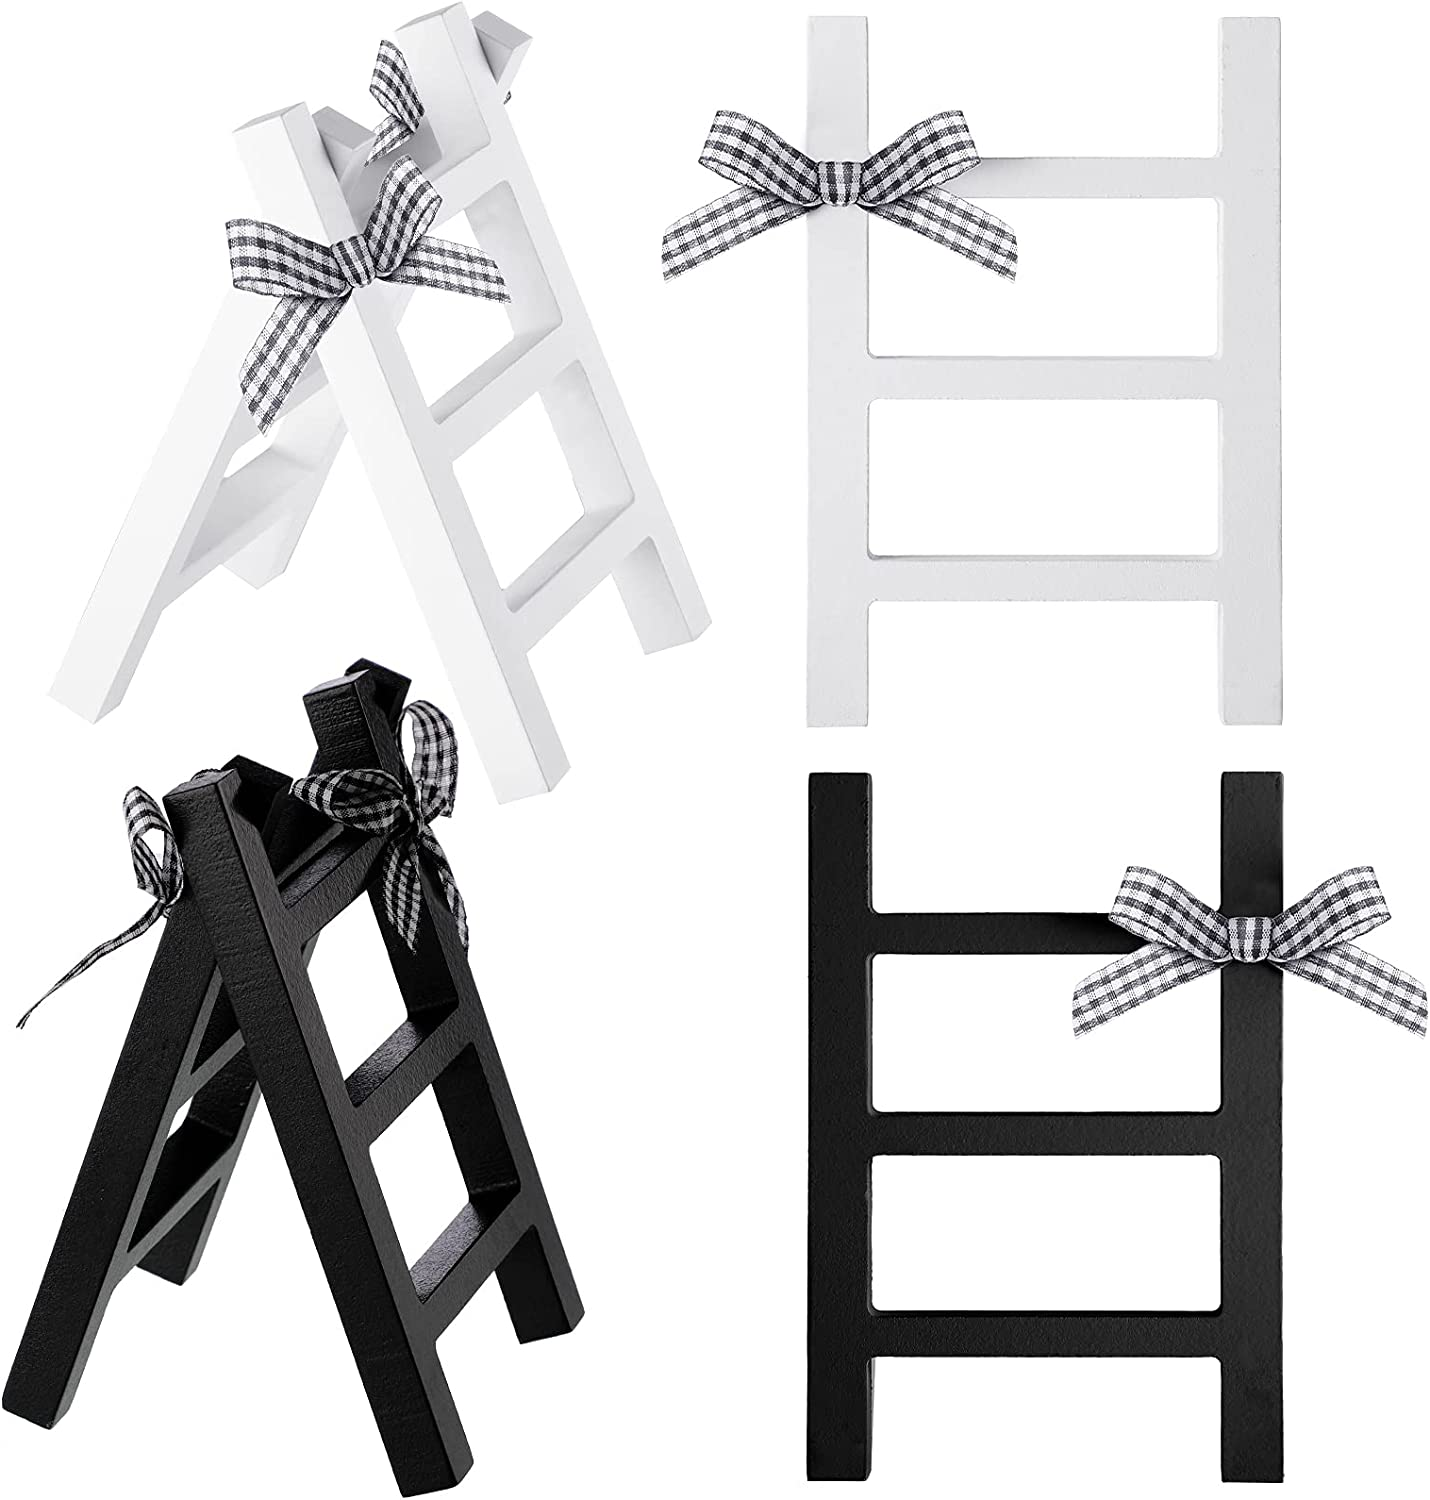 4 Pieces Farmhouse Wooden Ladder Decor Mini Wooden Ladder Mini Wall-Hanging Ladder Decor Summer Rustic Wooden Sign with Black and White Lattice Bow for Tiered Tray Home Kitchen Shelf Photo Prop